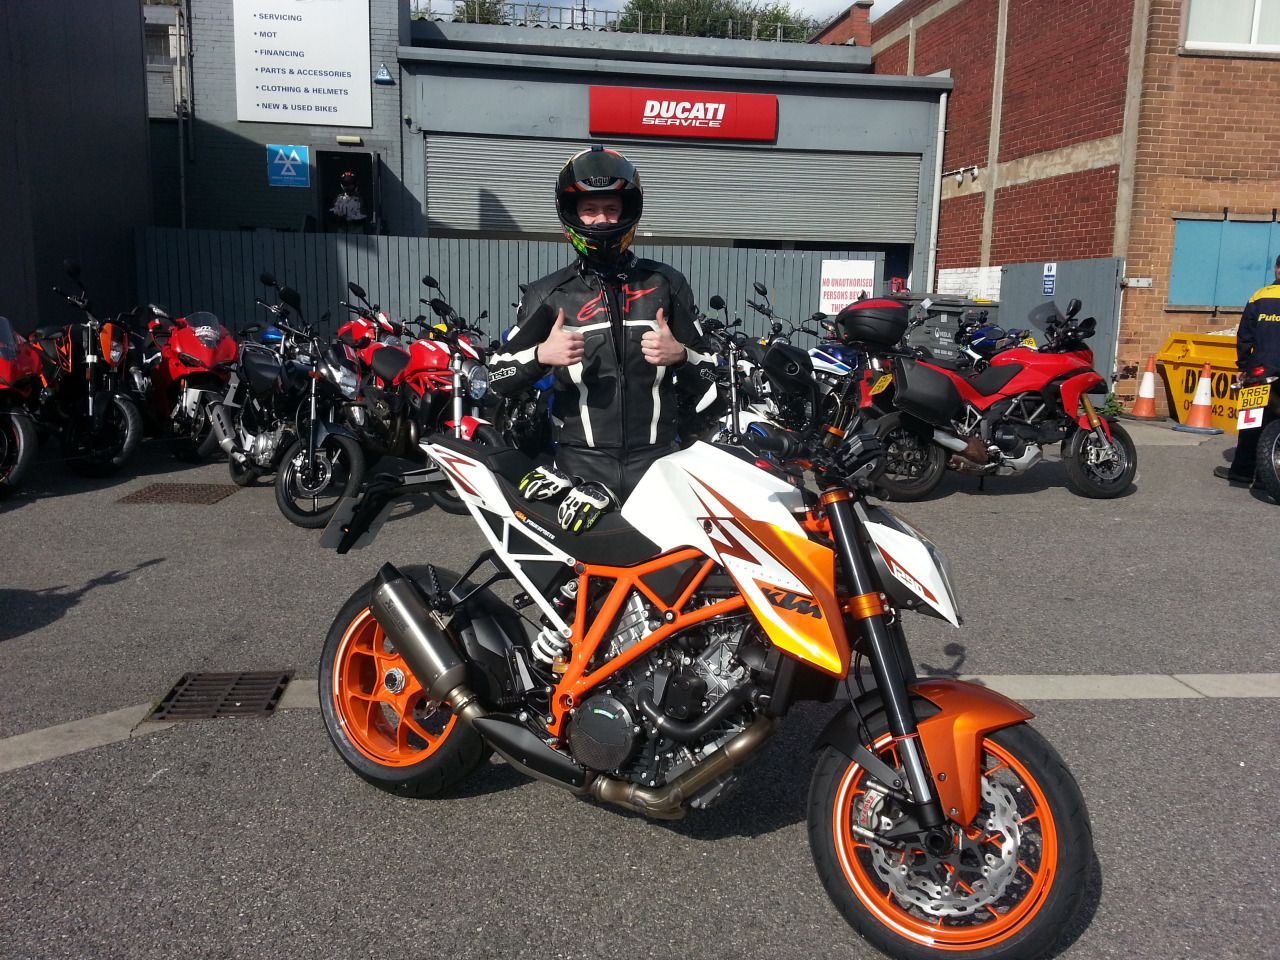 Top Bike Top Bloke We Know Youll Enjoy That Awesome Ktm Thanks